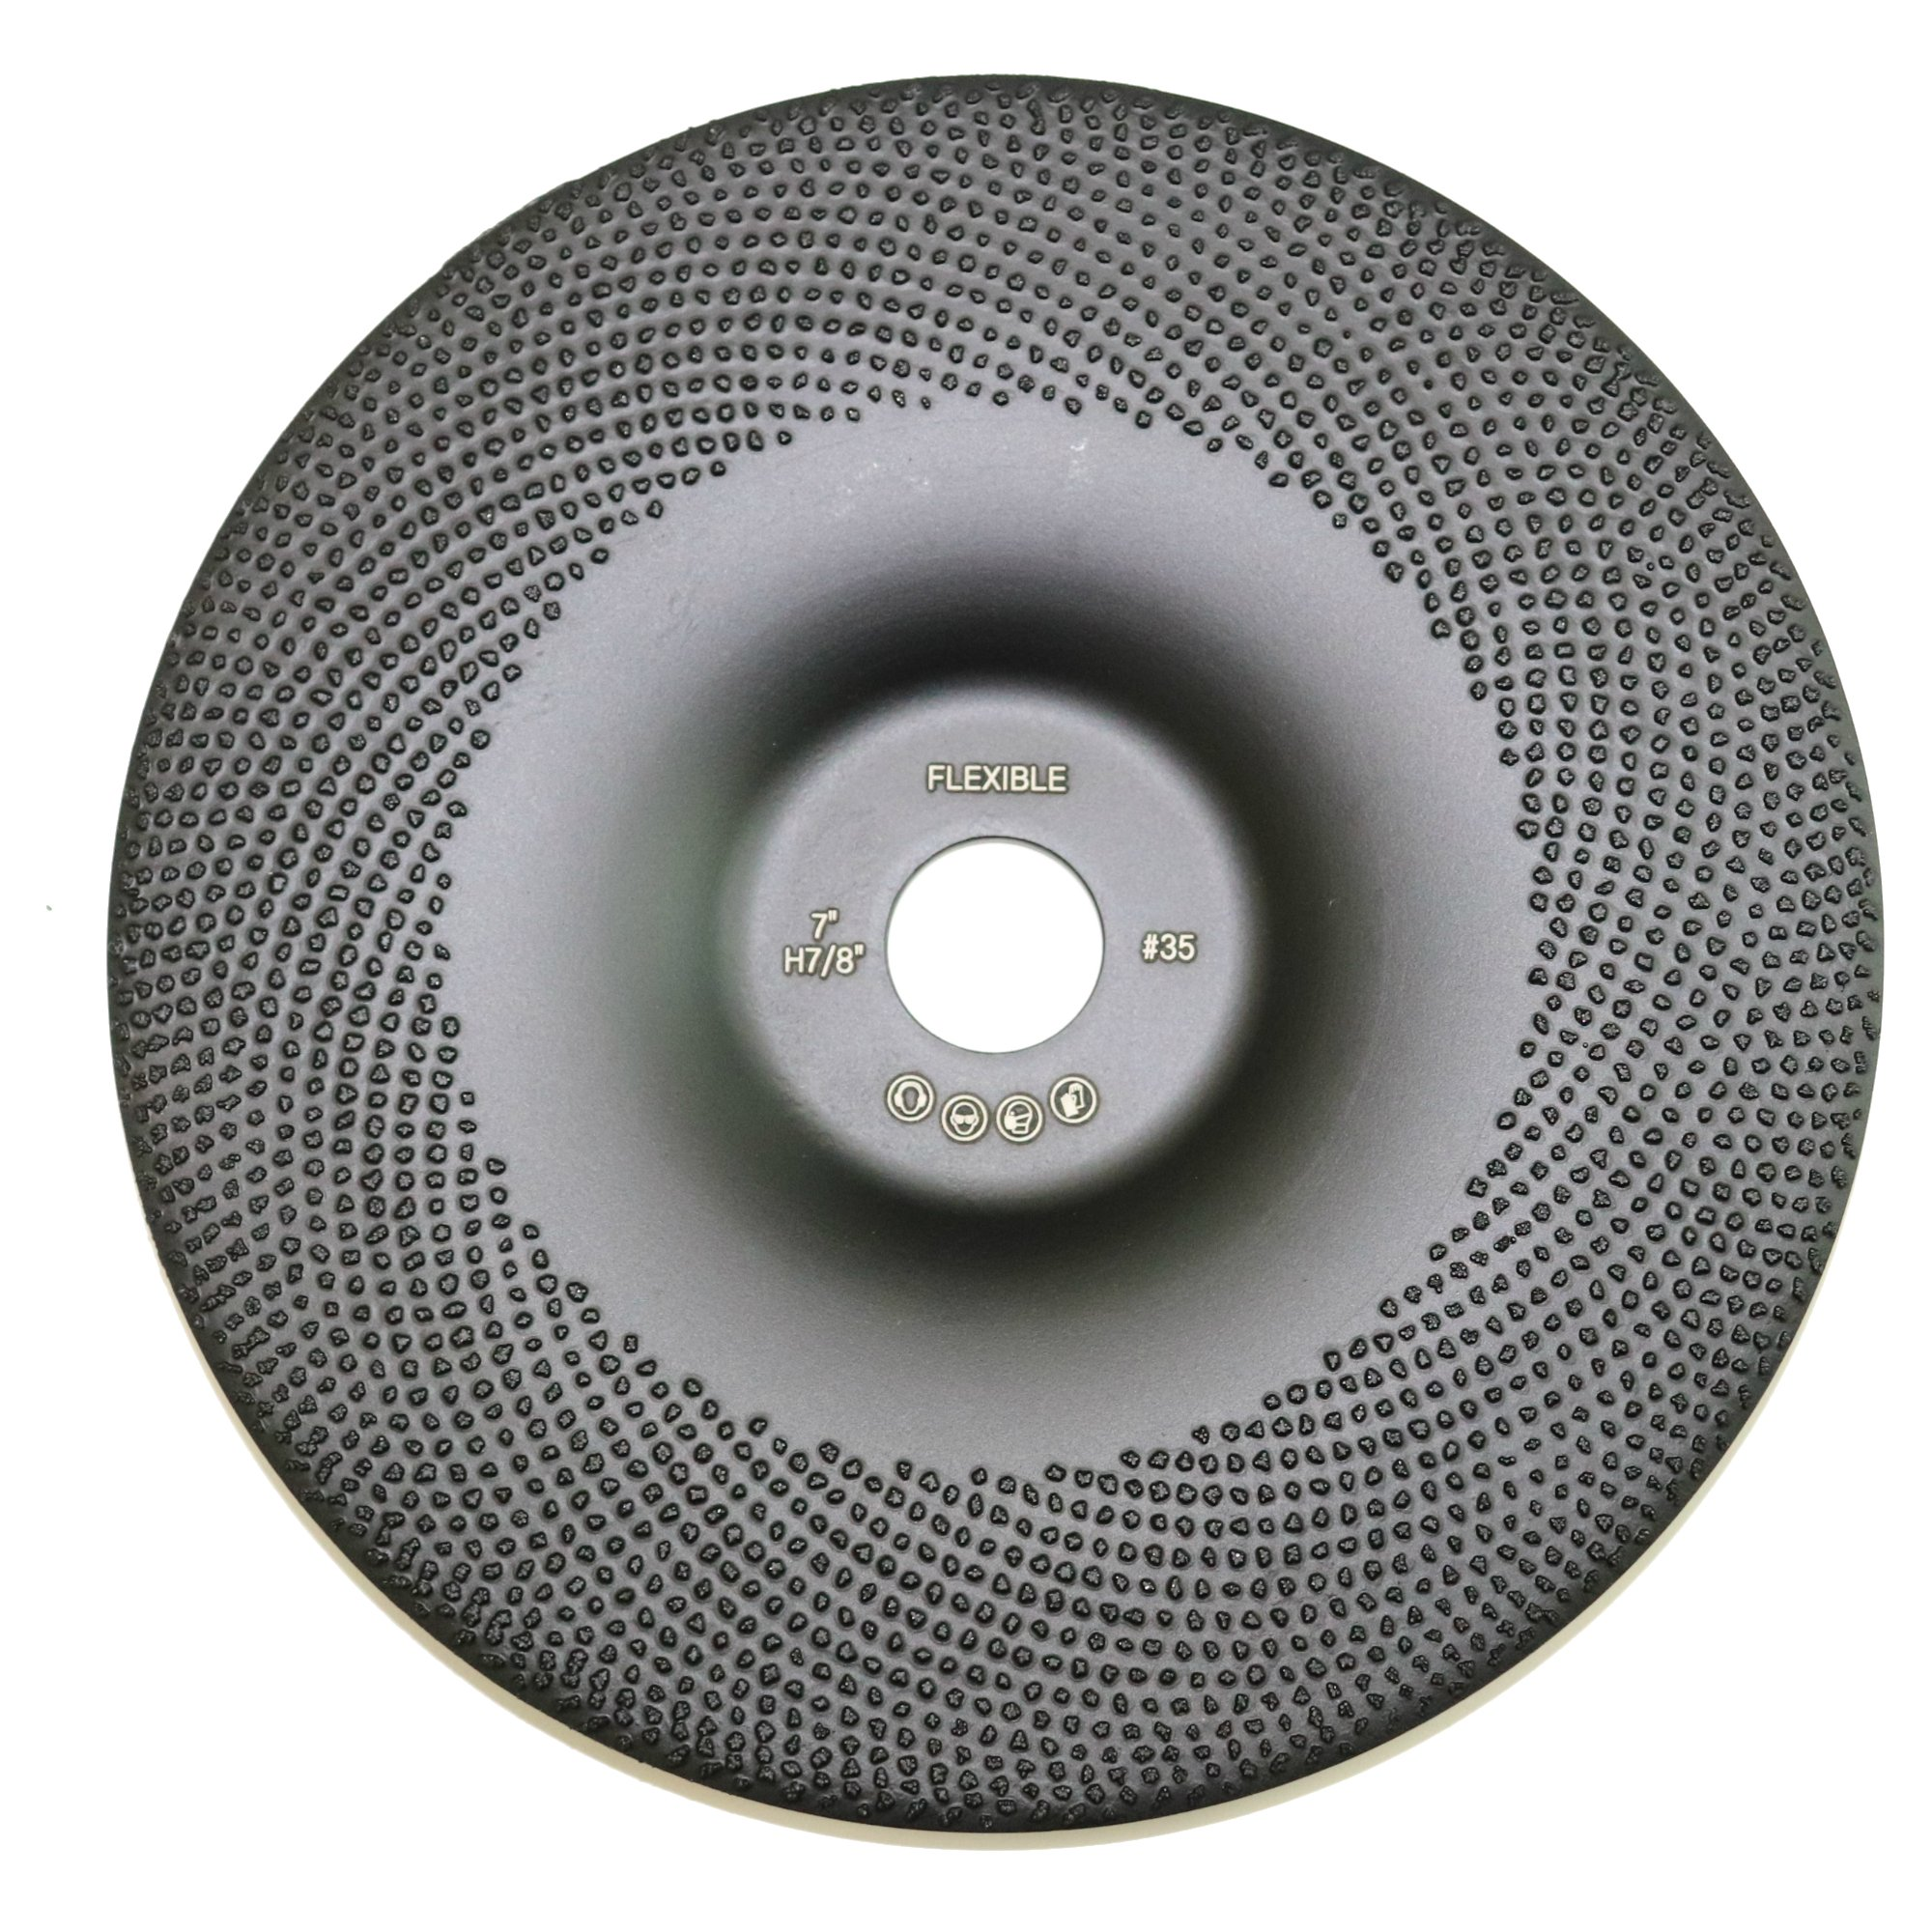 Flexible 7'' Diamond Cup Grinding Disc Wheel with RCD Newest Technology & Rubber Cushioned Body for Grinding & Polishing Universal Purpose (Flexible, 7'', 10.6 oz Very Light)